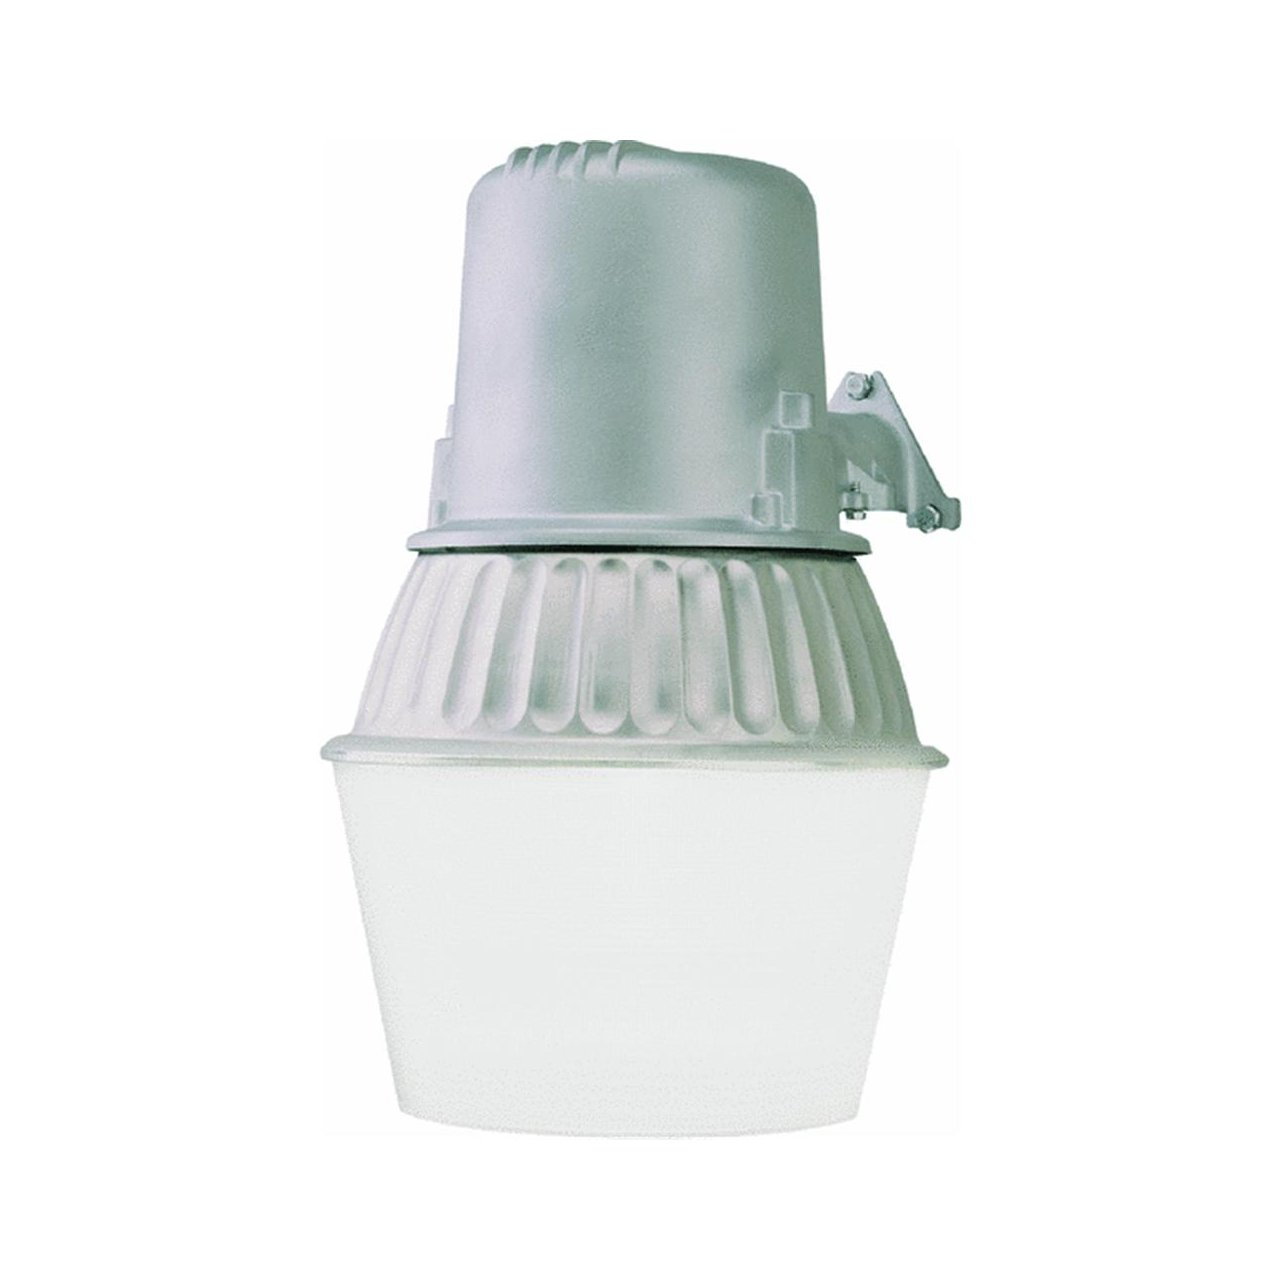 Cooper lighting al65fl 65w fluorescent safety and security dusk to cooper lighting al65fl 65w fluorescent safety and security dusk to dawn area light commercial street and area lighting amazon arubaitofo Choice Image